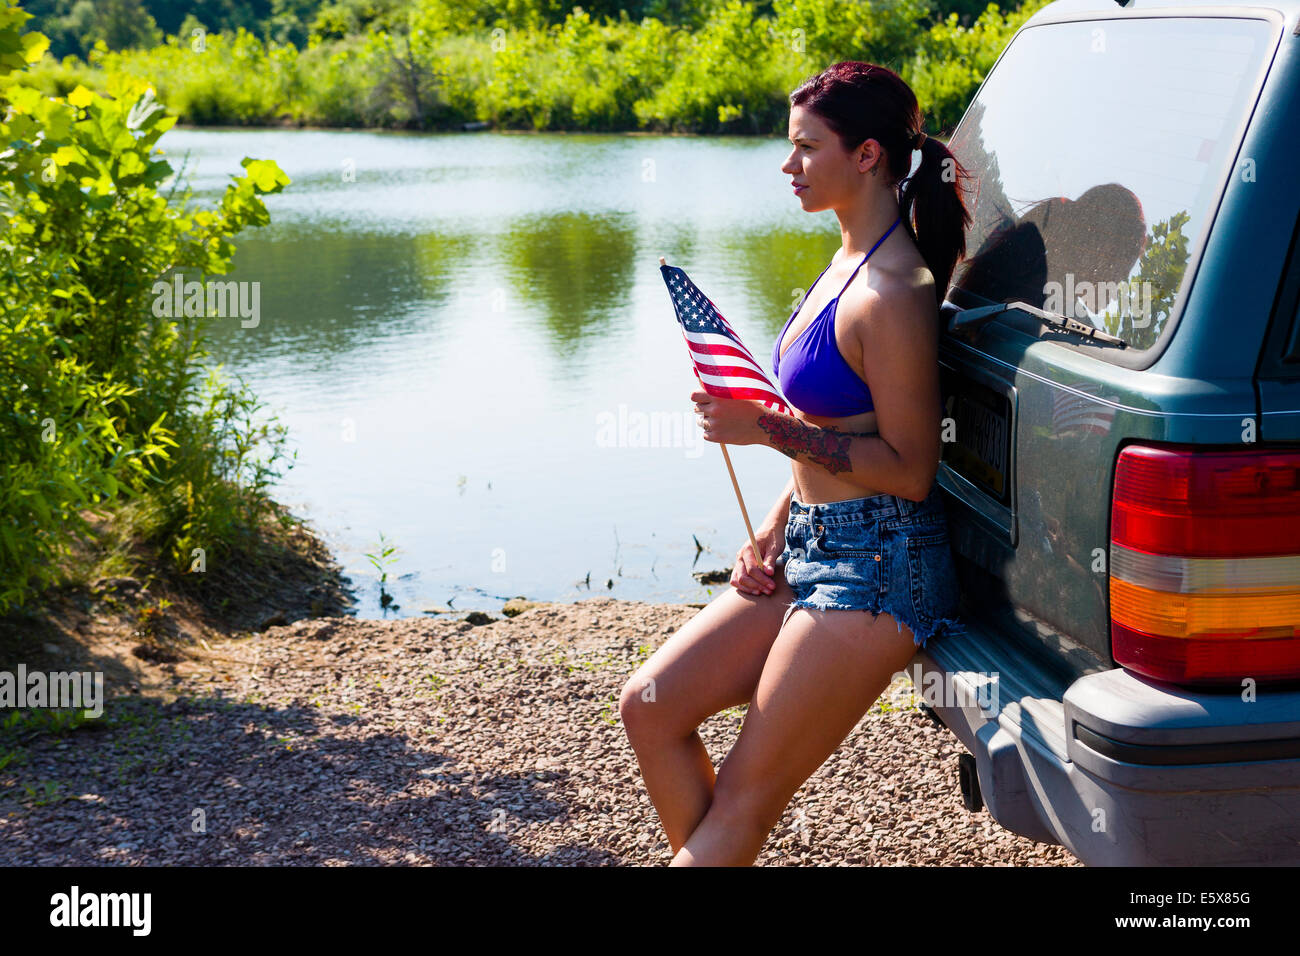 Young woman with american flag leaning against off road vehicle, Delaware Canal State Park, New Hope, Pennsylvania, - Stock Image